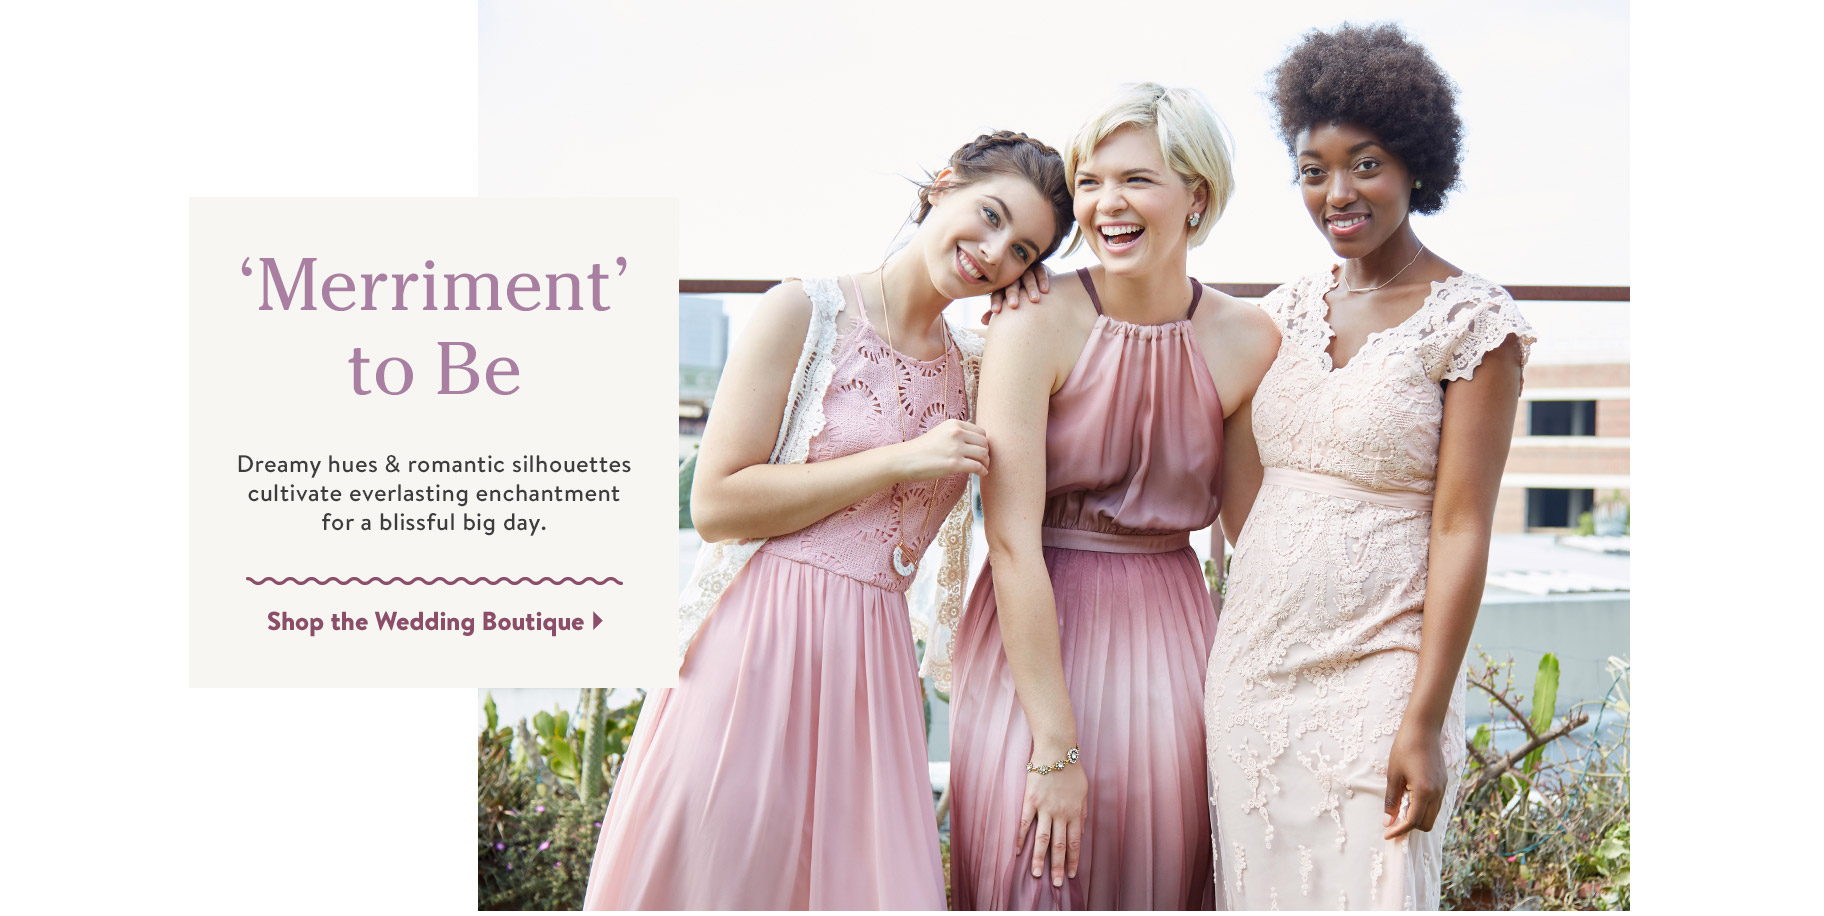 'Merriment' to Be. Dreamy hues & romantic silhouettes cultivate everlasting enchantment for a blissful big day. Shop the Wedding Boutique.